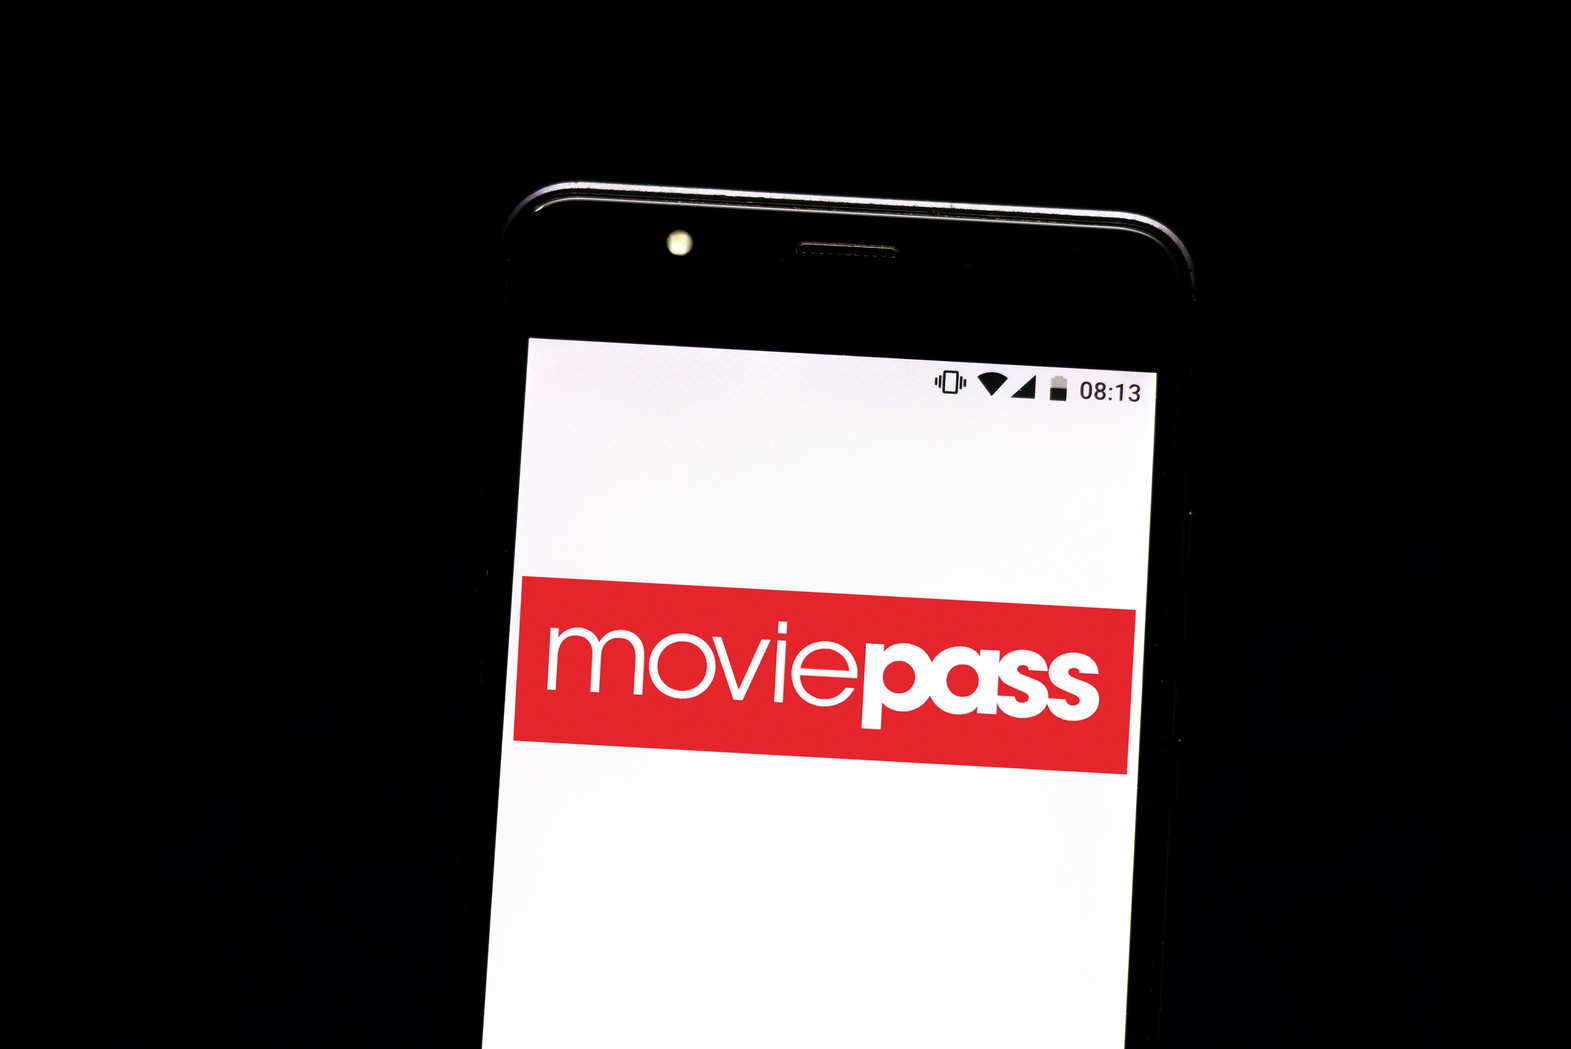 MoviePass breach: Cybersecurity lapse adds to startup's growing list of problems